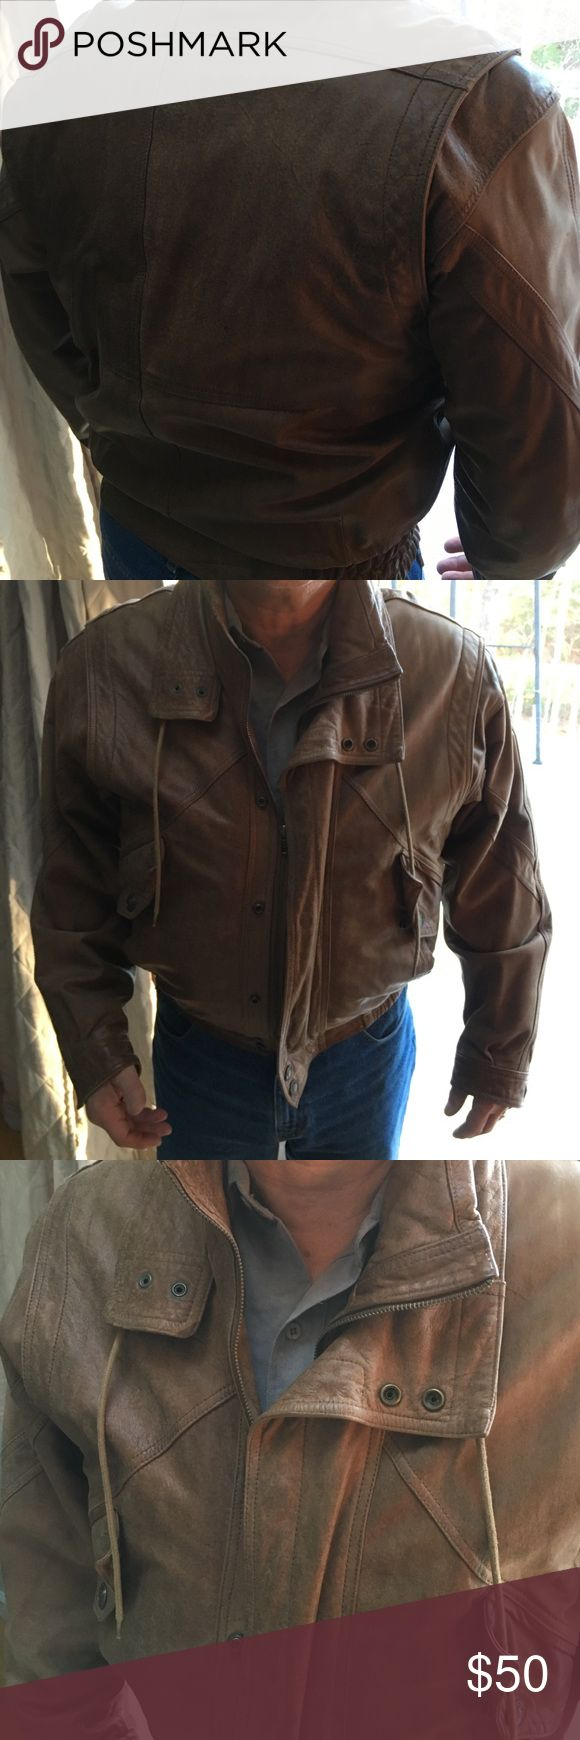 Vintage Men's leather jacket by Adventure Bounds Saddle brown soft Men's leather jacket.  Has zip in insulate lining. Jackets & Coats Pea Coats